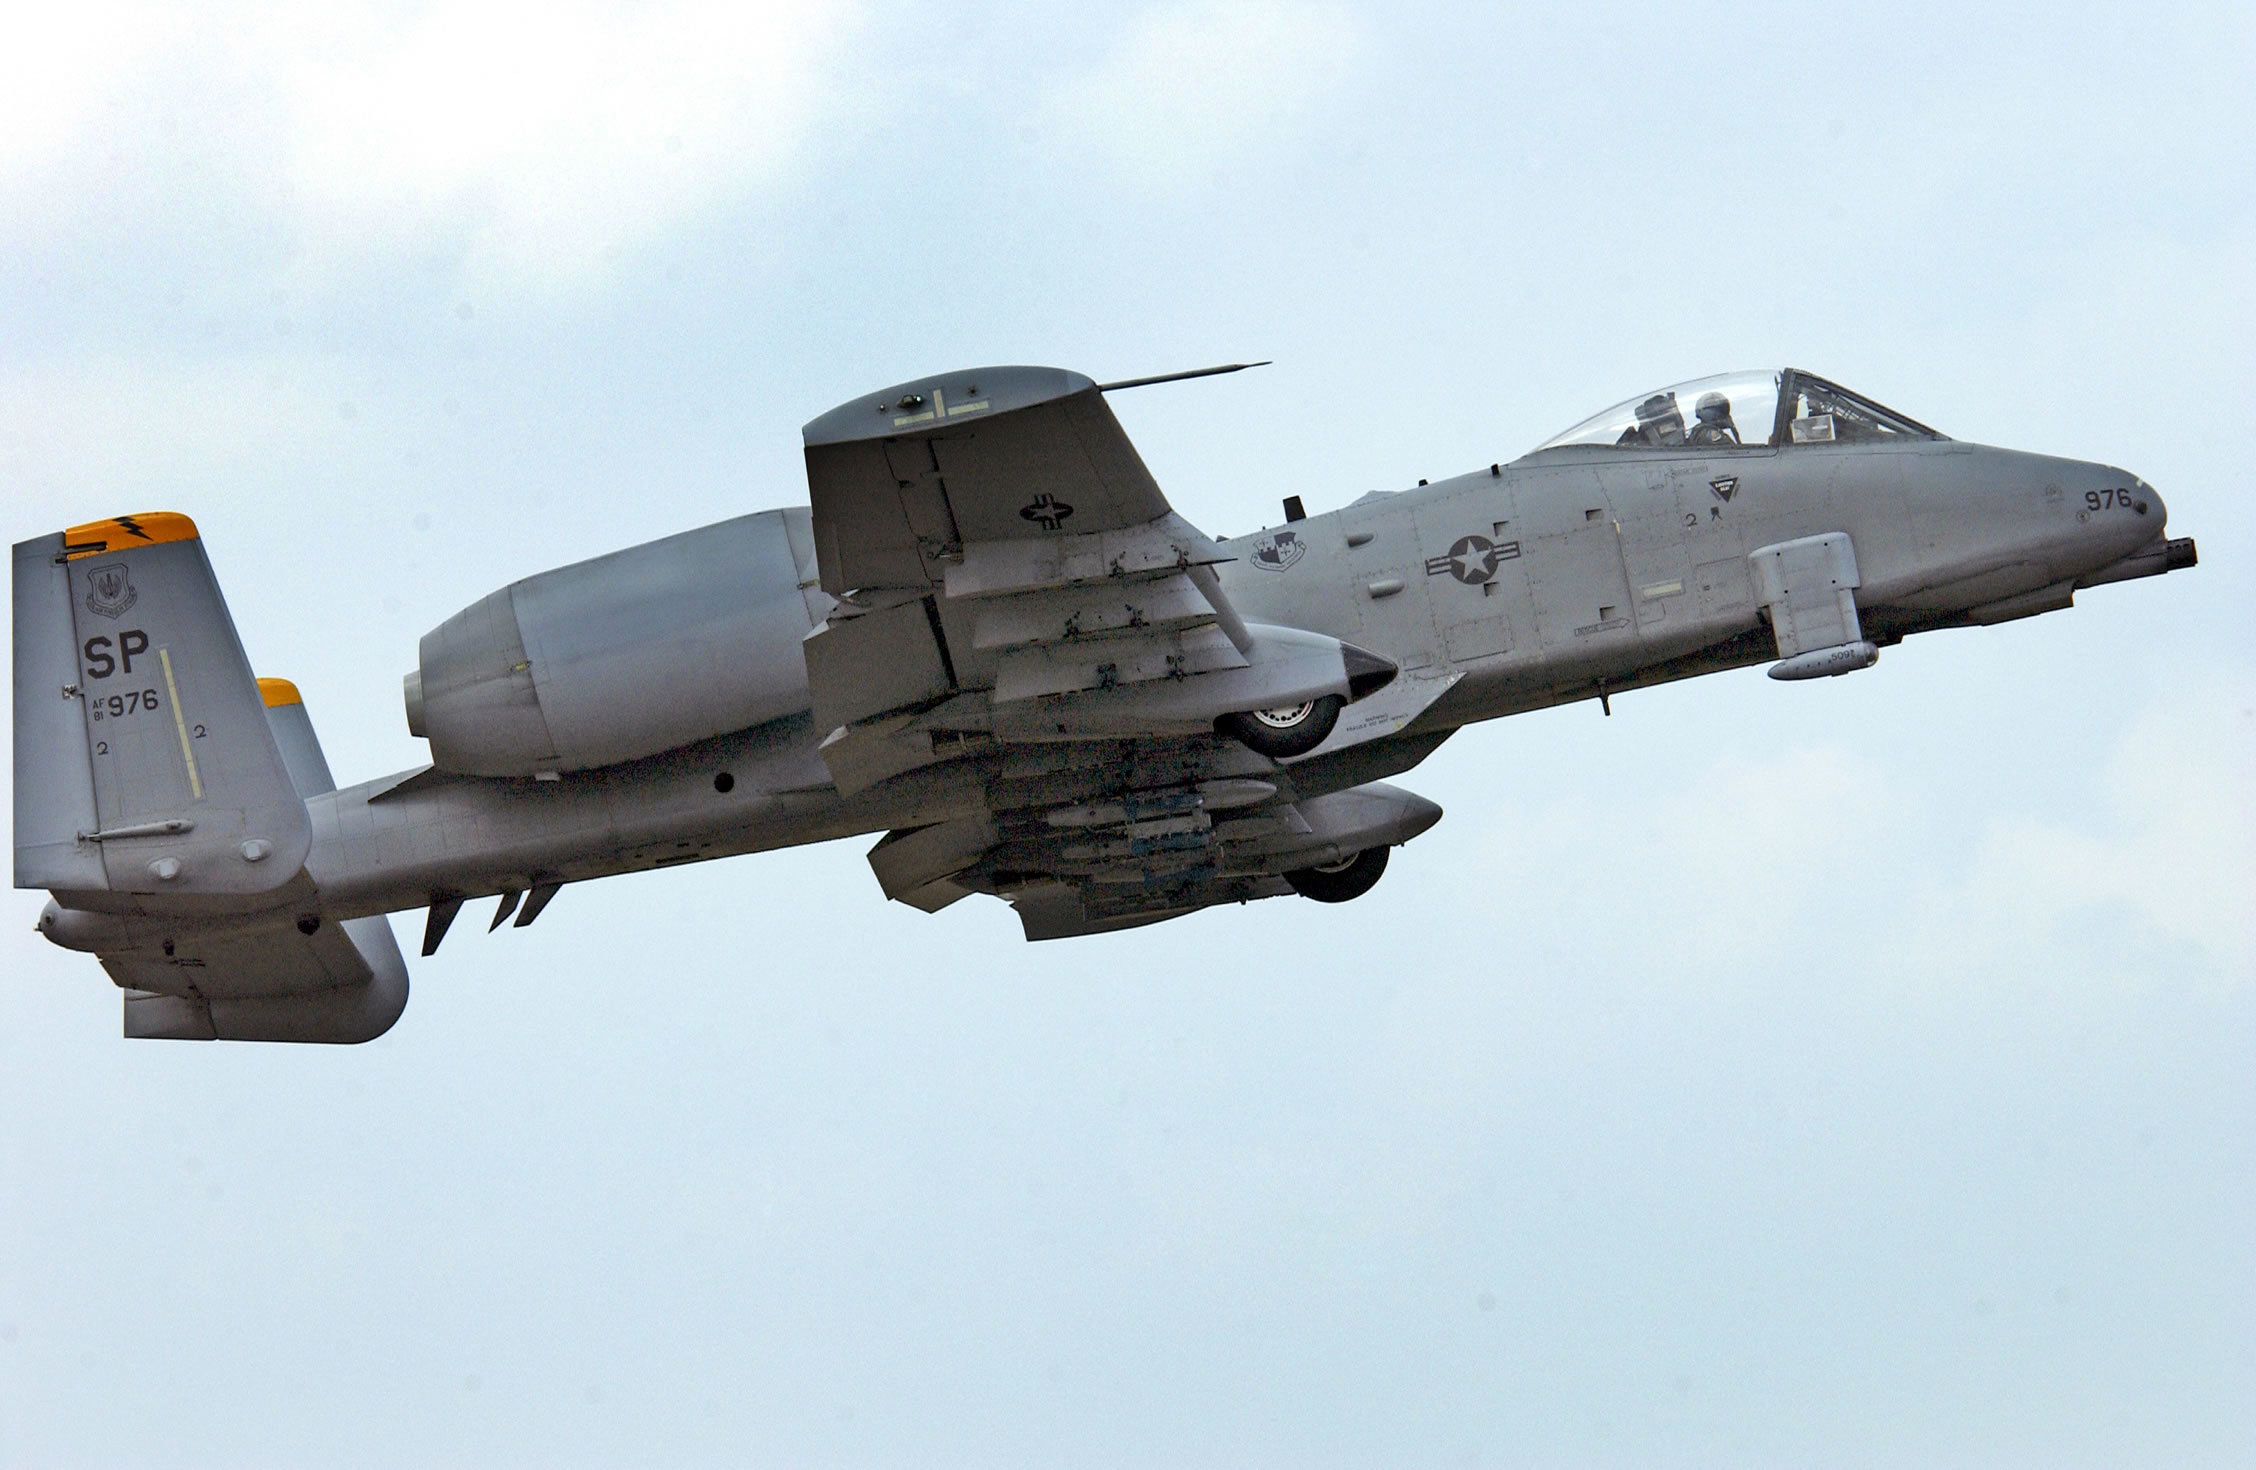 Aircraft military warthog GAU-8 HD Wallpaper